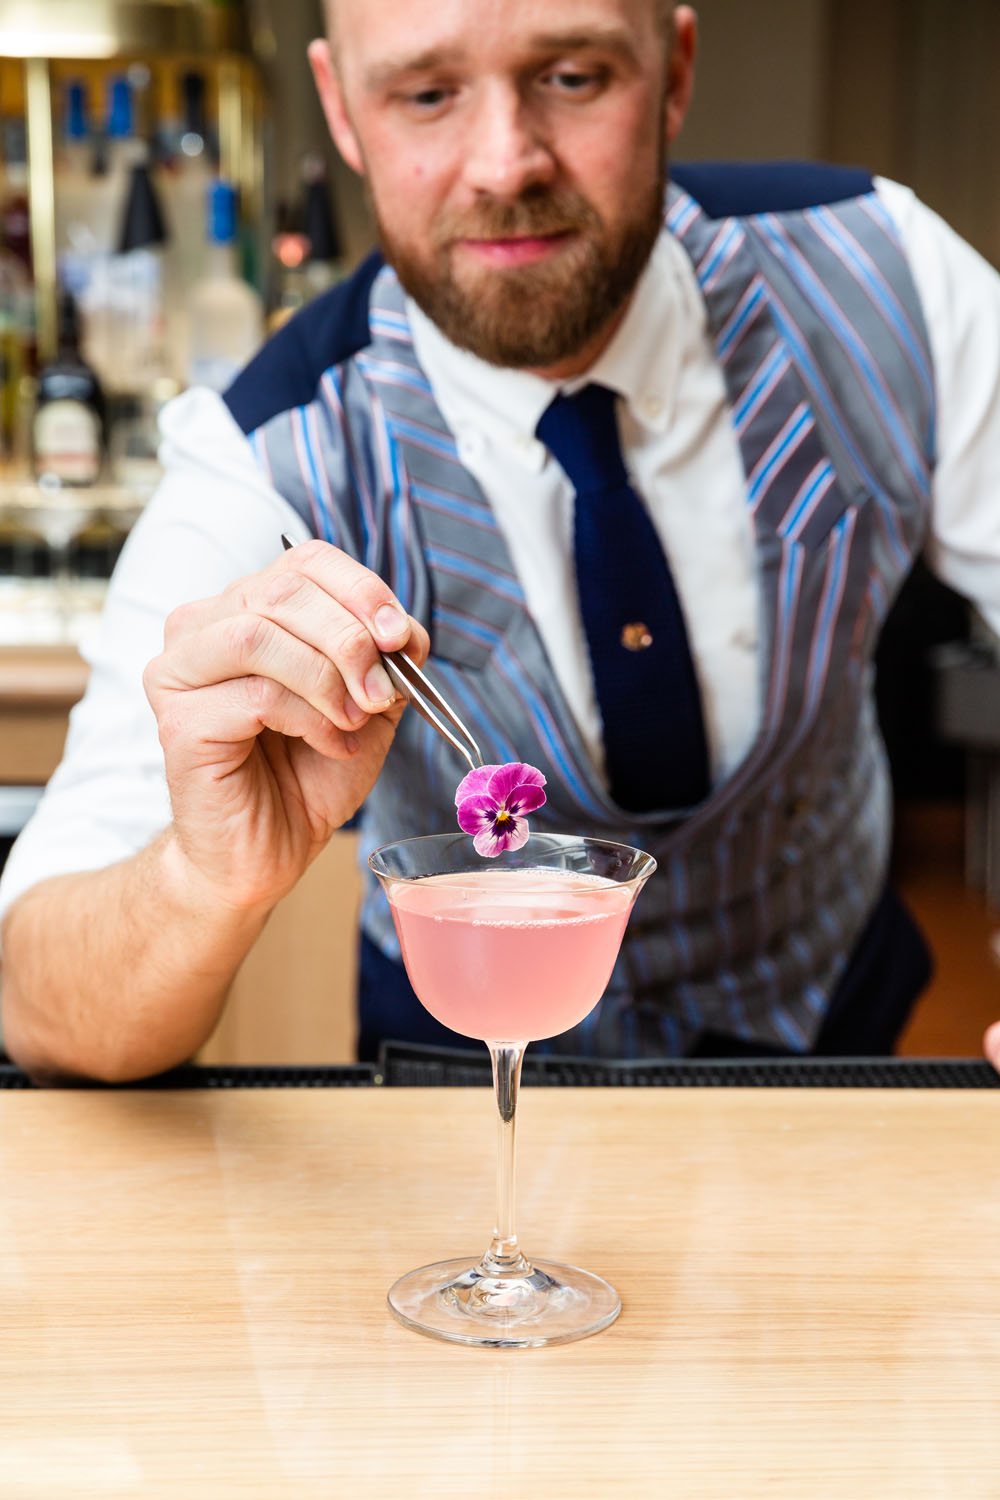 cocktail-making-07.jpg